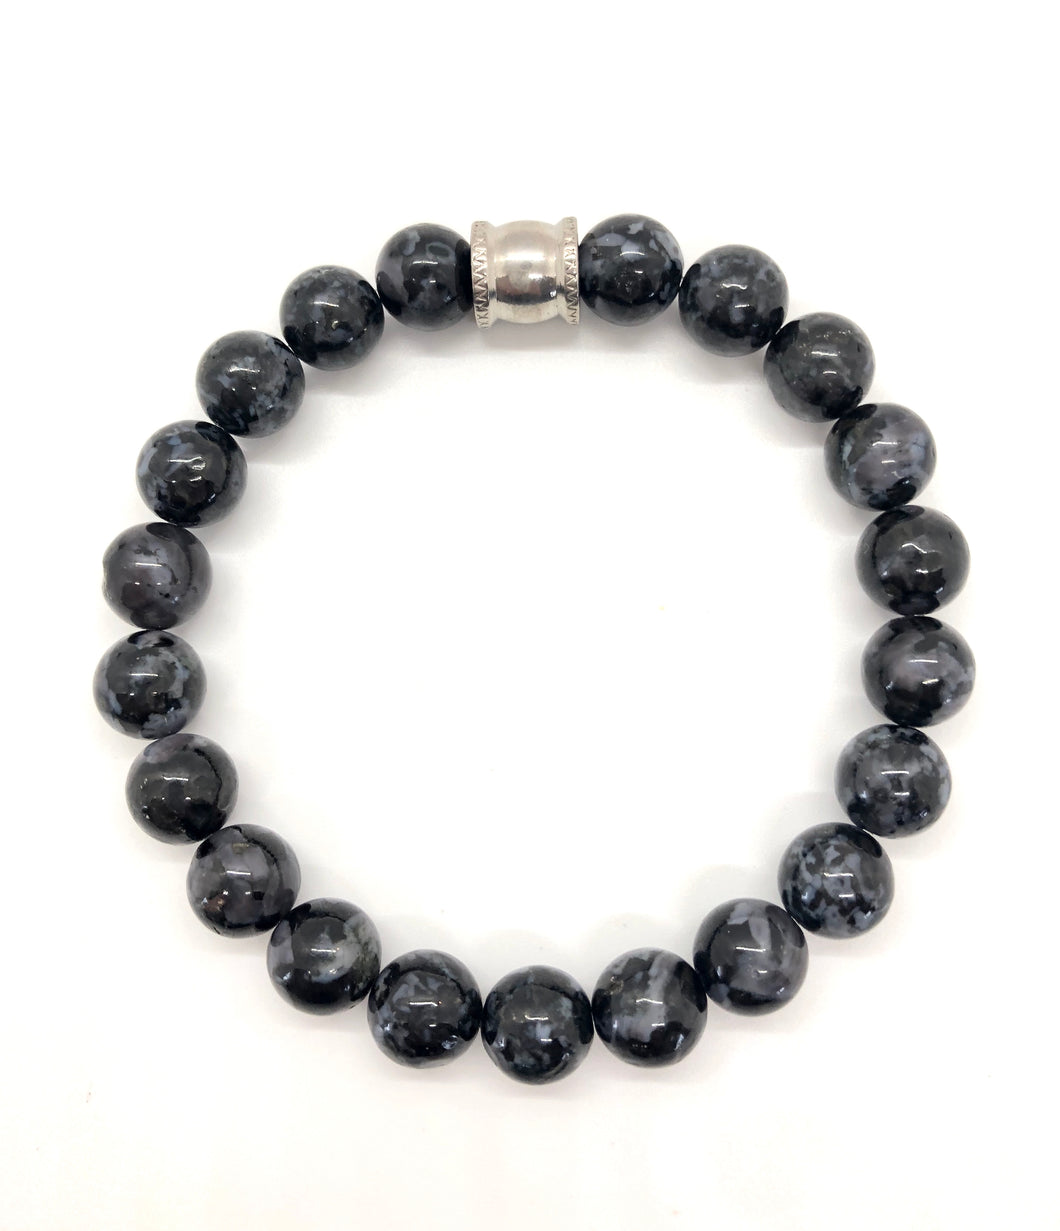 Indigo Gabbro Mystic Merlinite Gemstone bracelet with Stainless Steel Accent